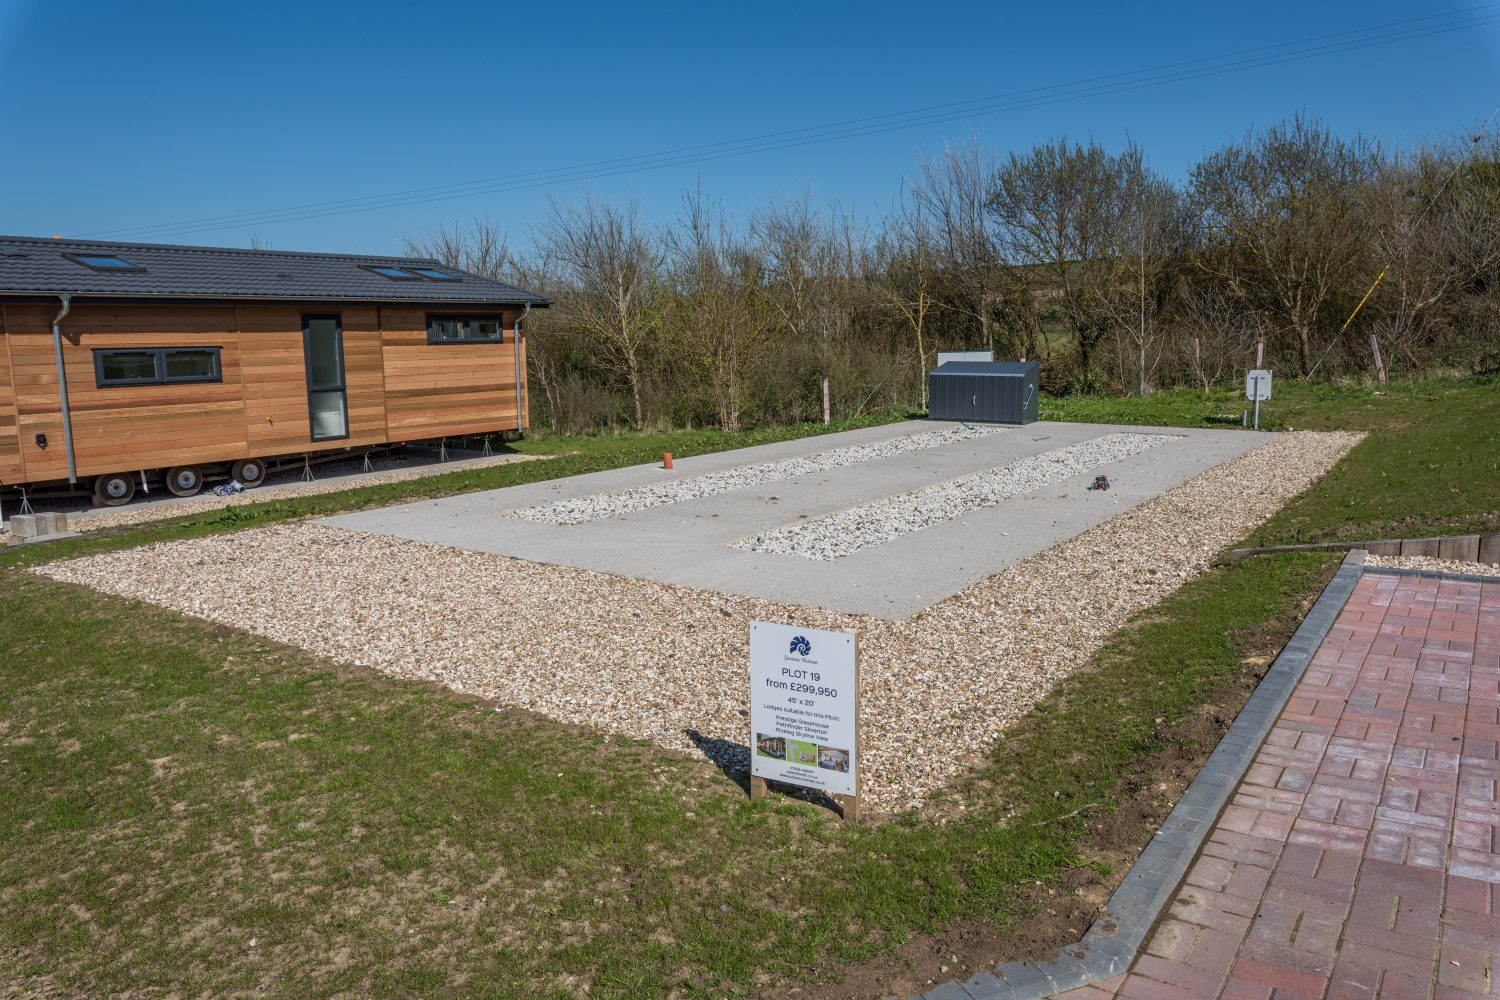 Lodges for Sale in Dorset